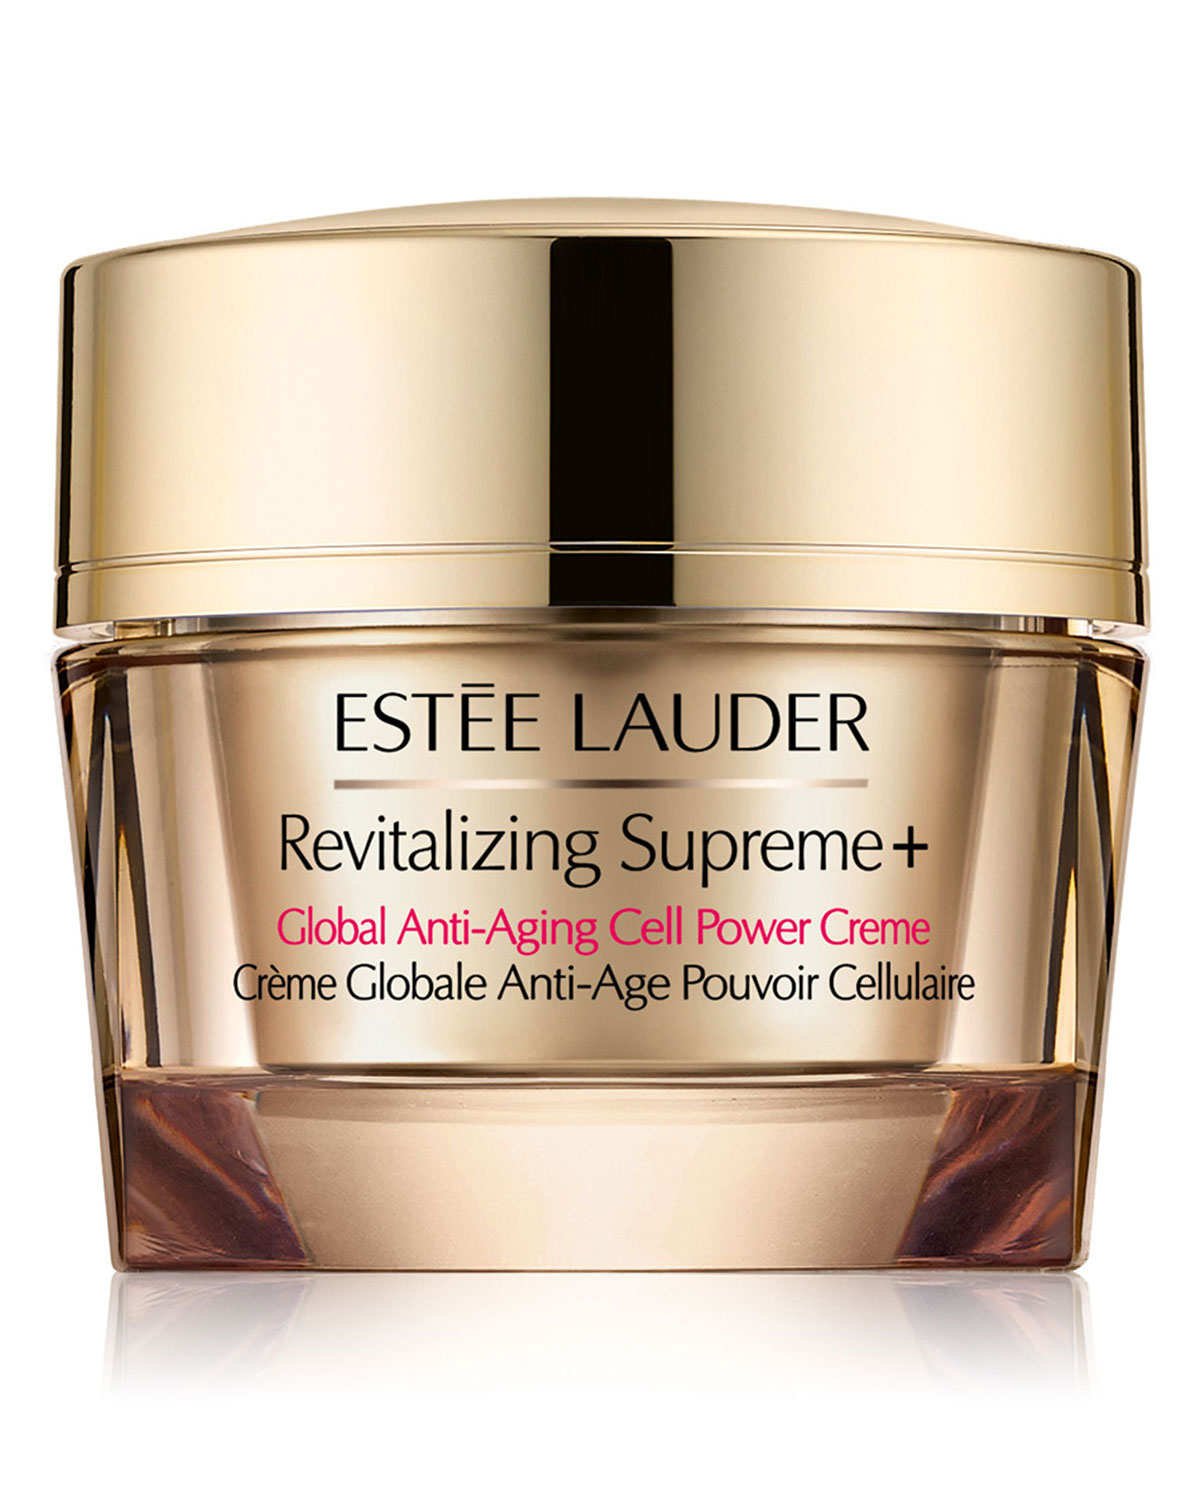 Estee Lauder 1.7 oz. Revitalizing Supreme+ Global Anti-Aging Cell Power Creme